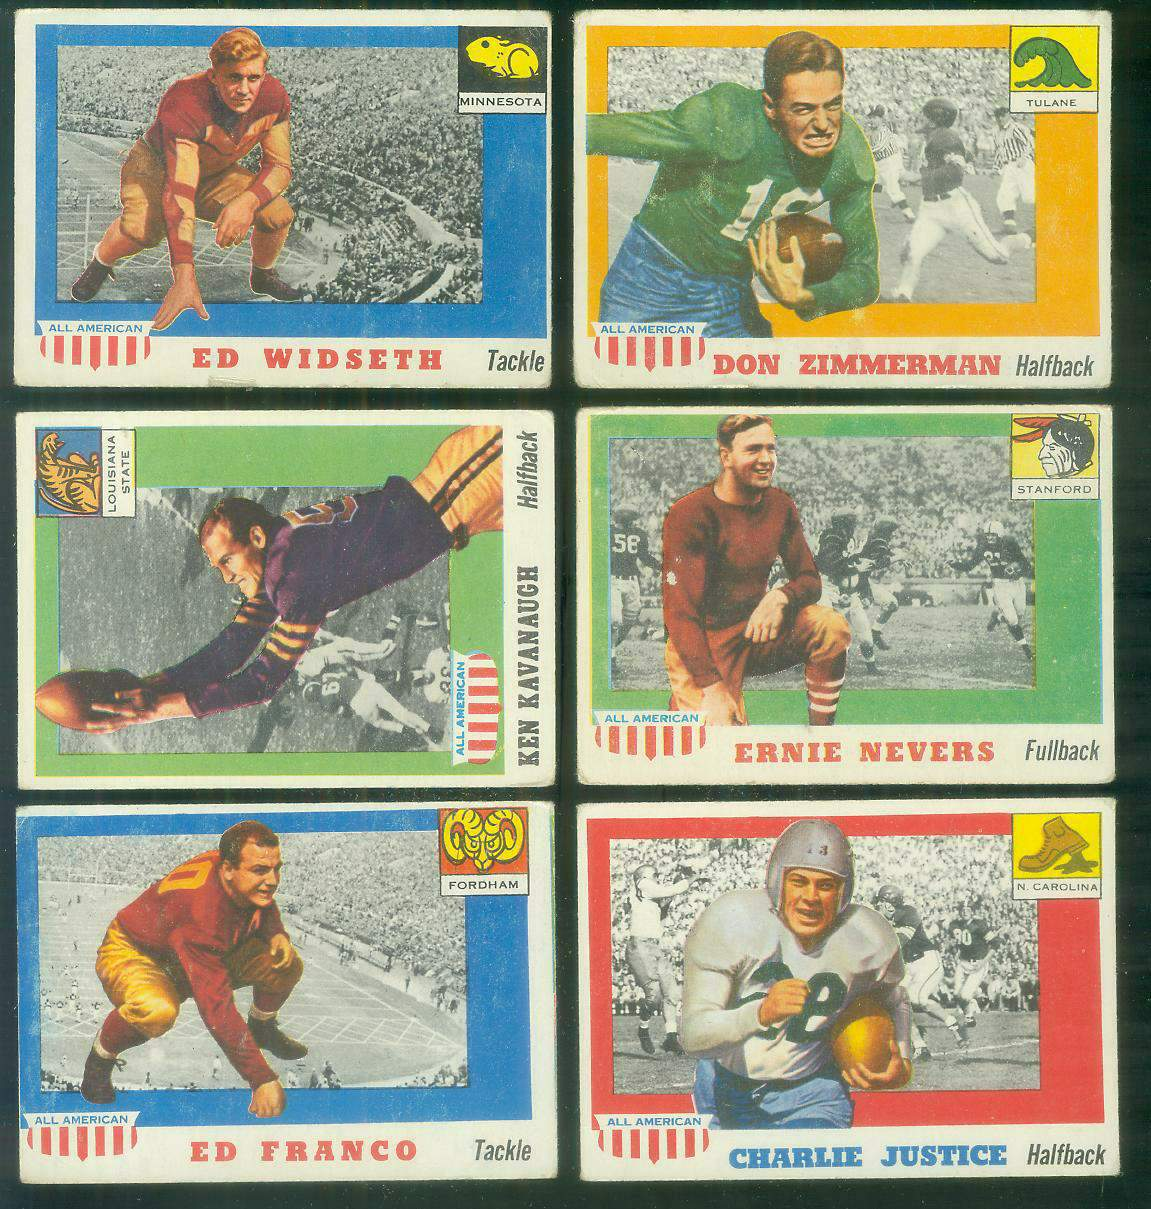 1955 Topps ALL-AMERICAN FB #.56 Ernie Nevers ROOKIE (STANFORD) Football cards value